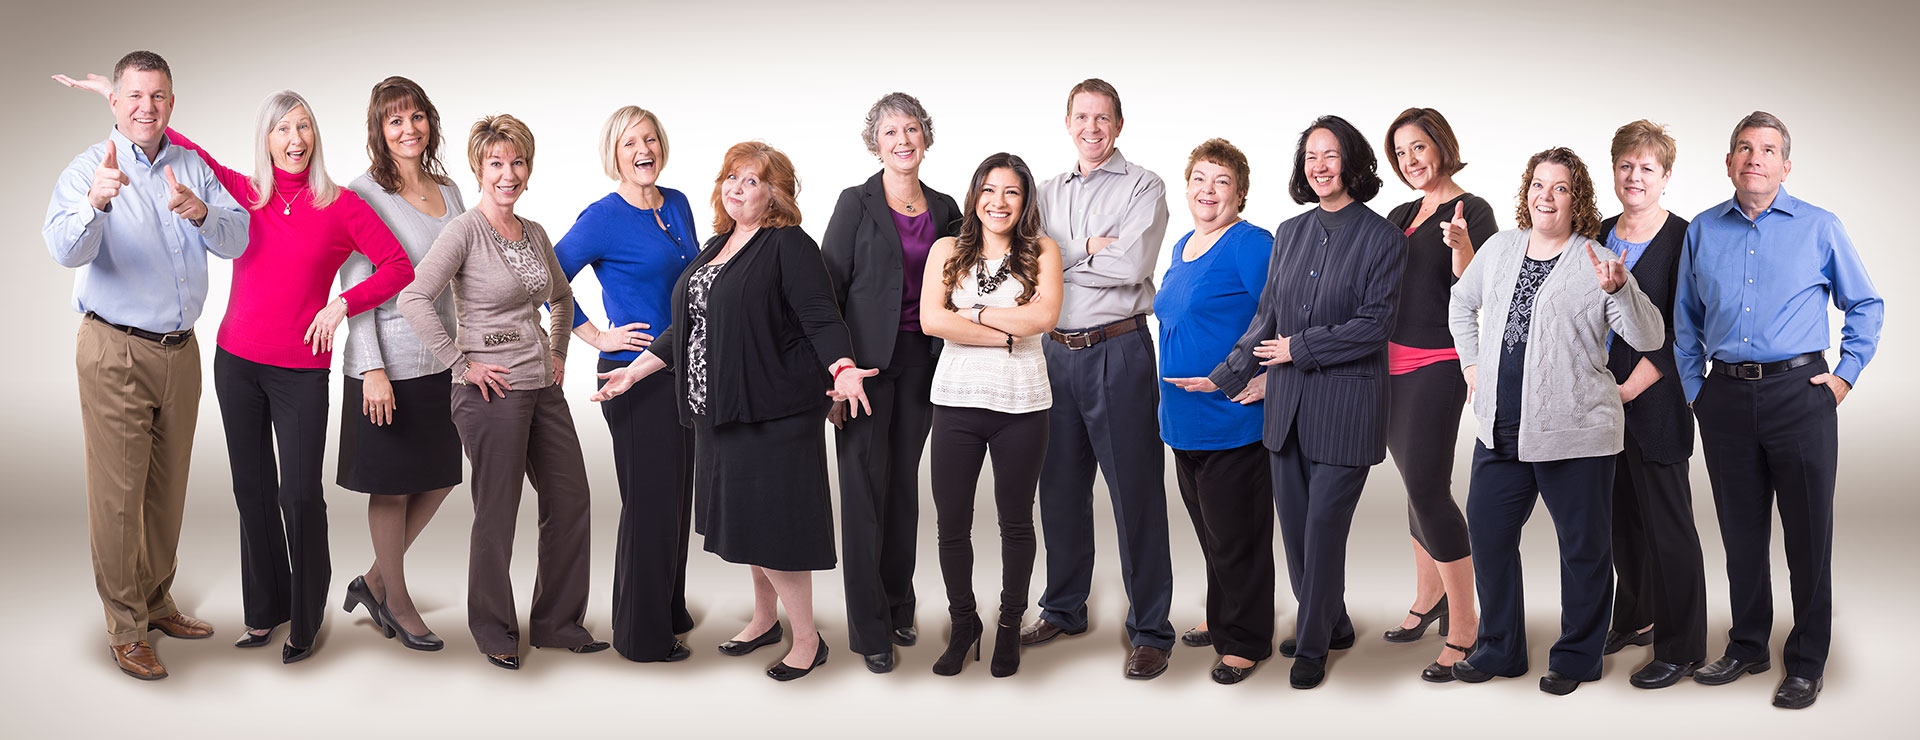 Comstock Insurance Team, Reno, NV